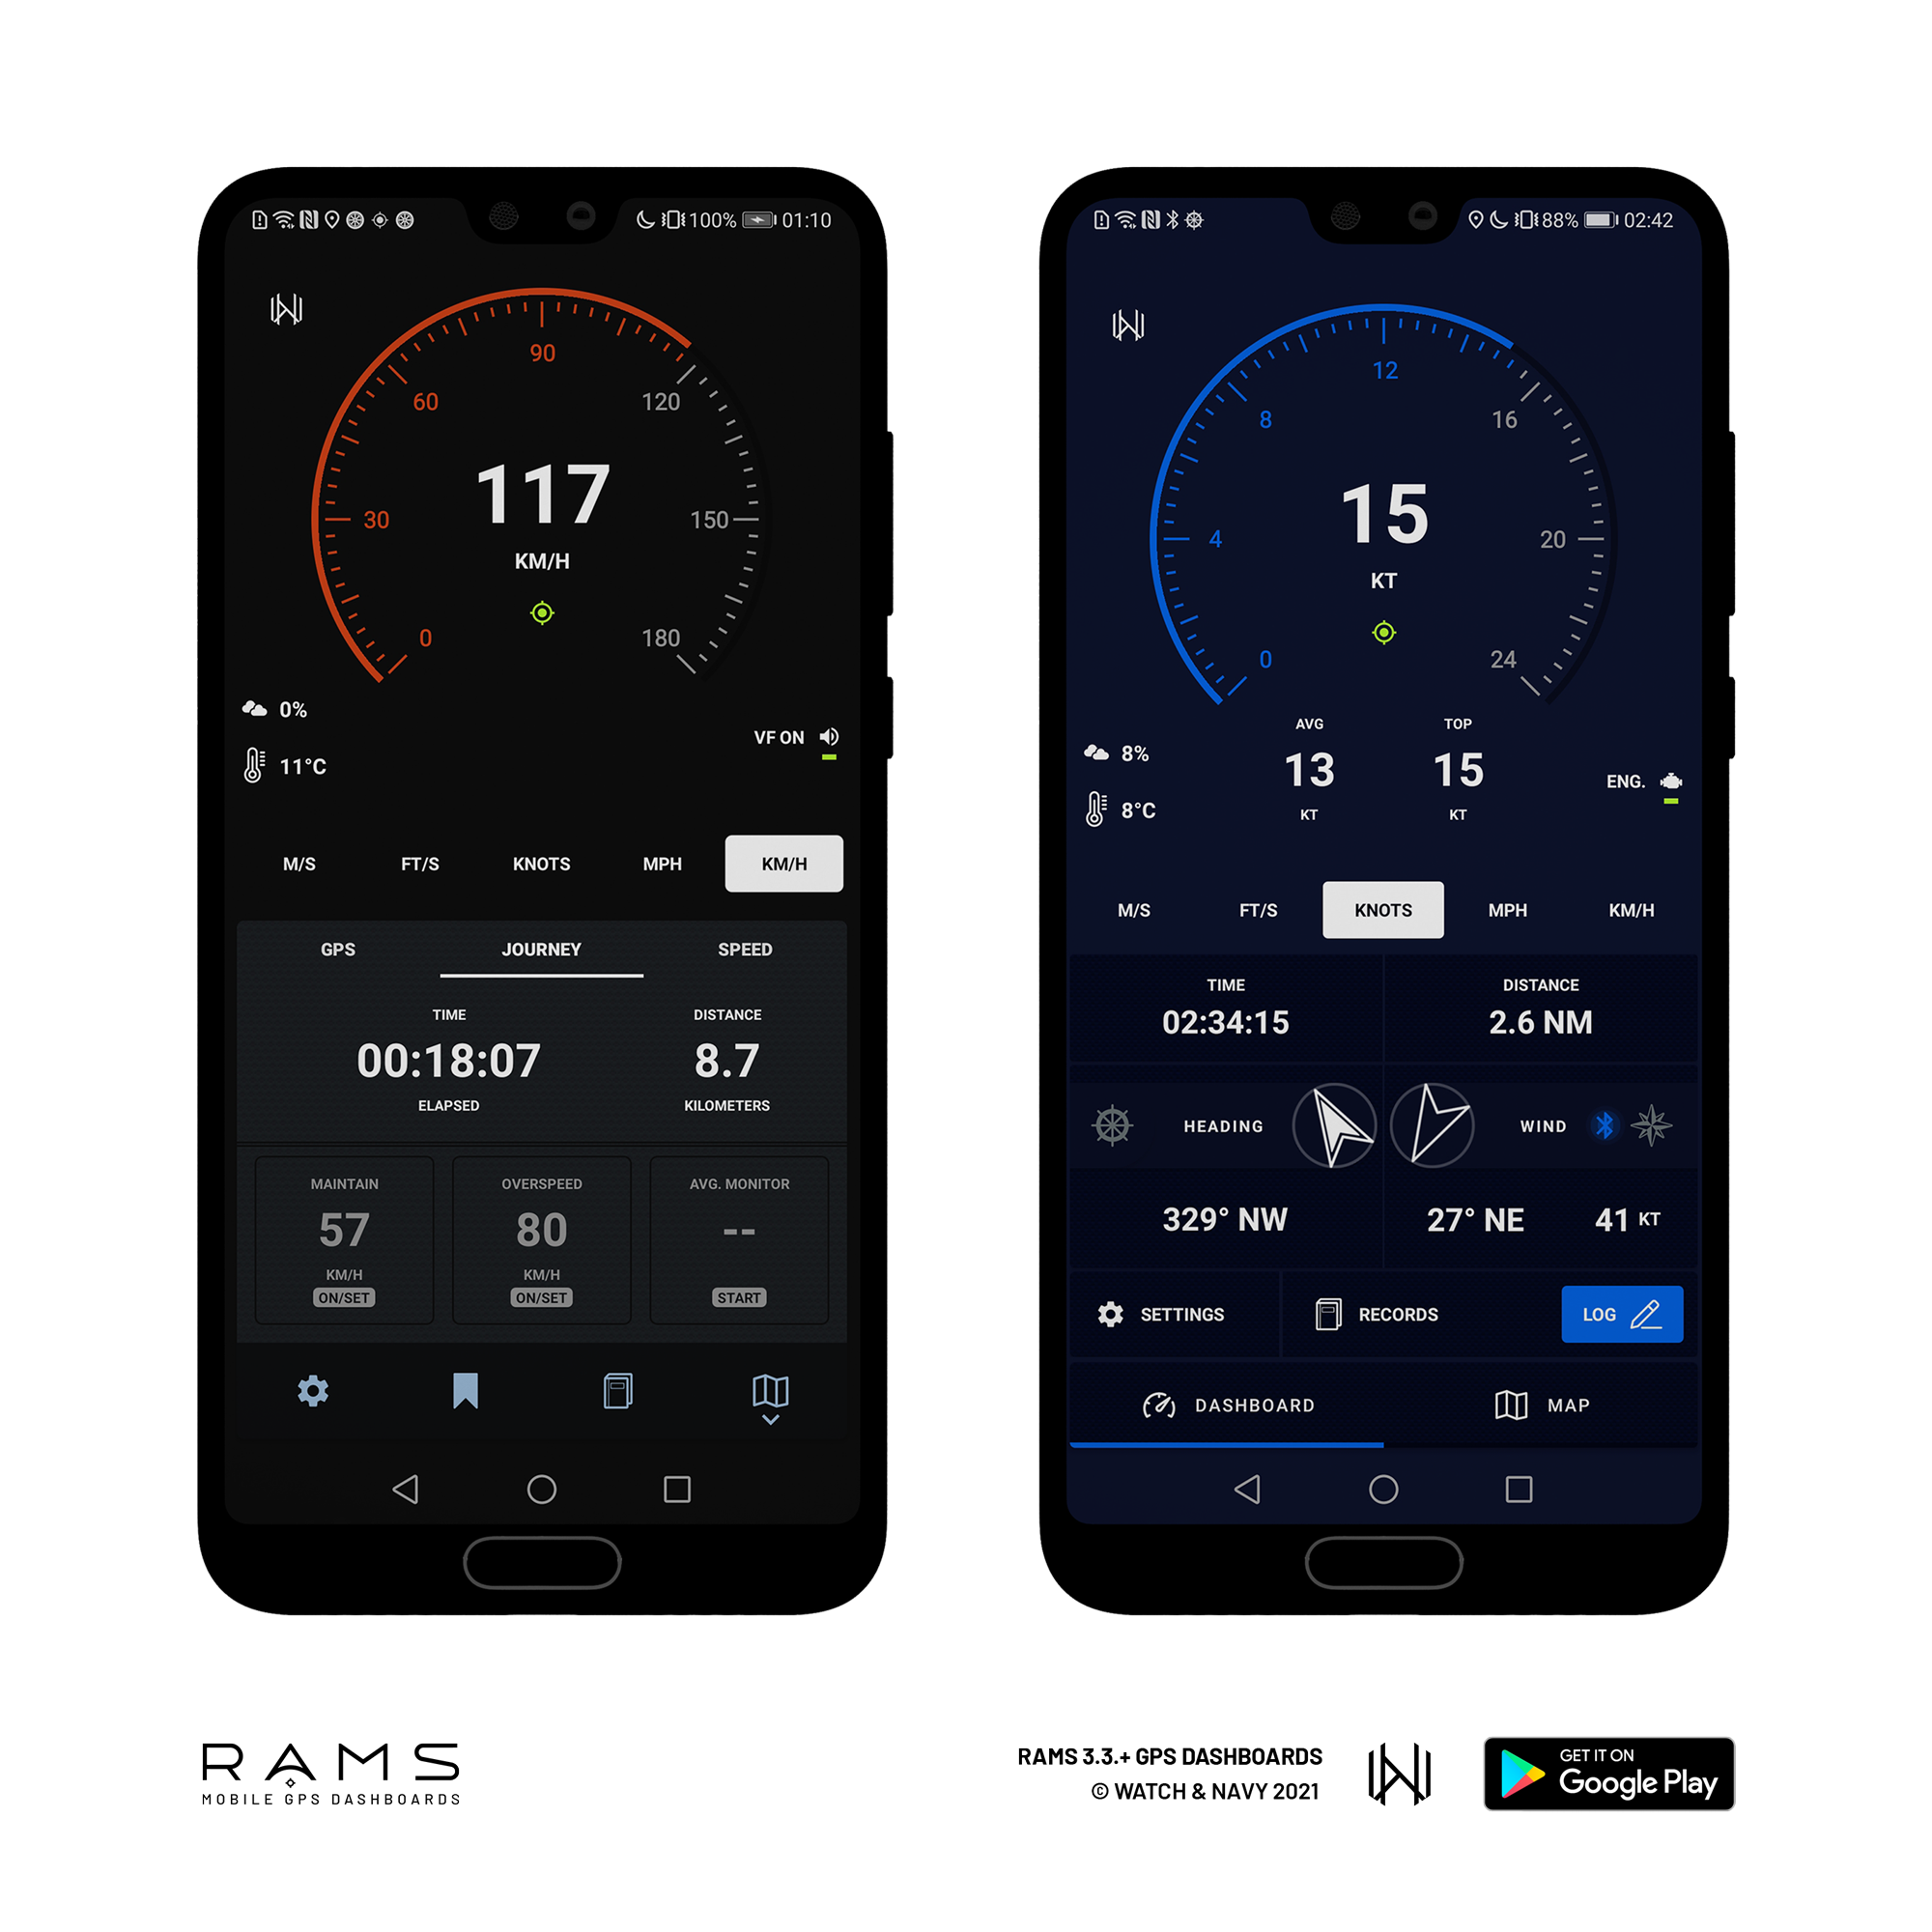 Mobile GPS Dashboards Range for Android, RAMS 3.3.+